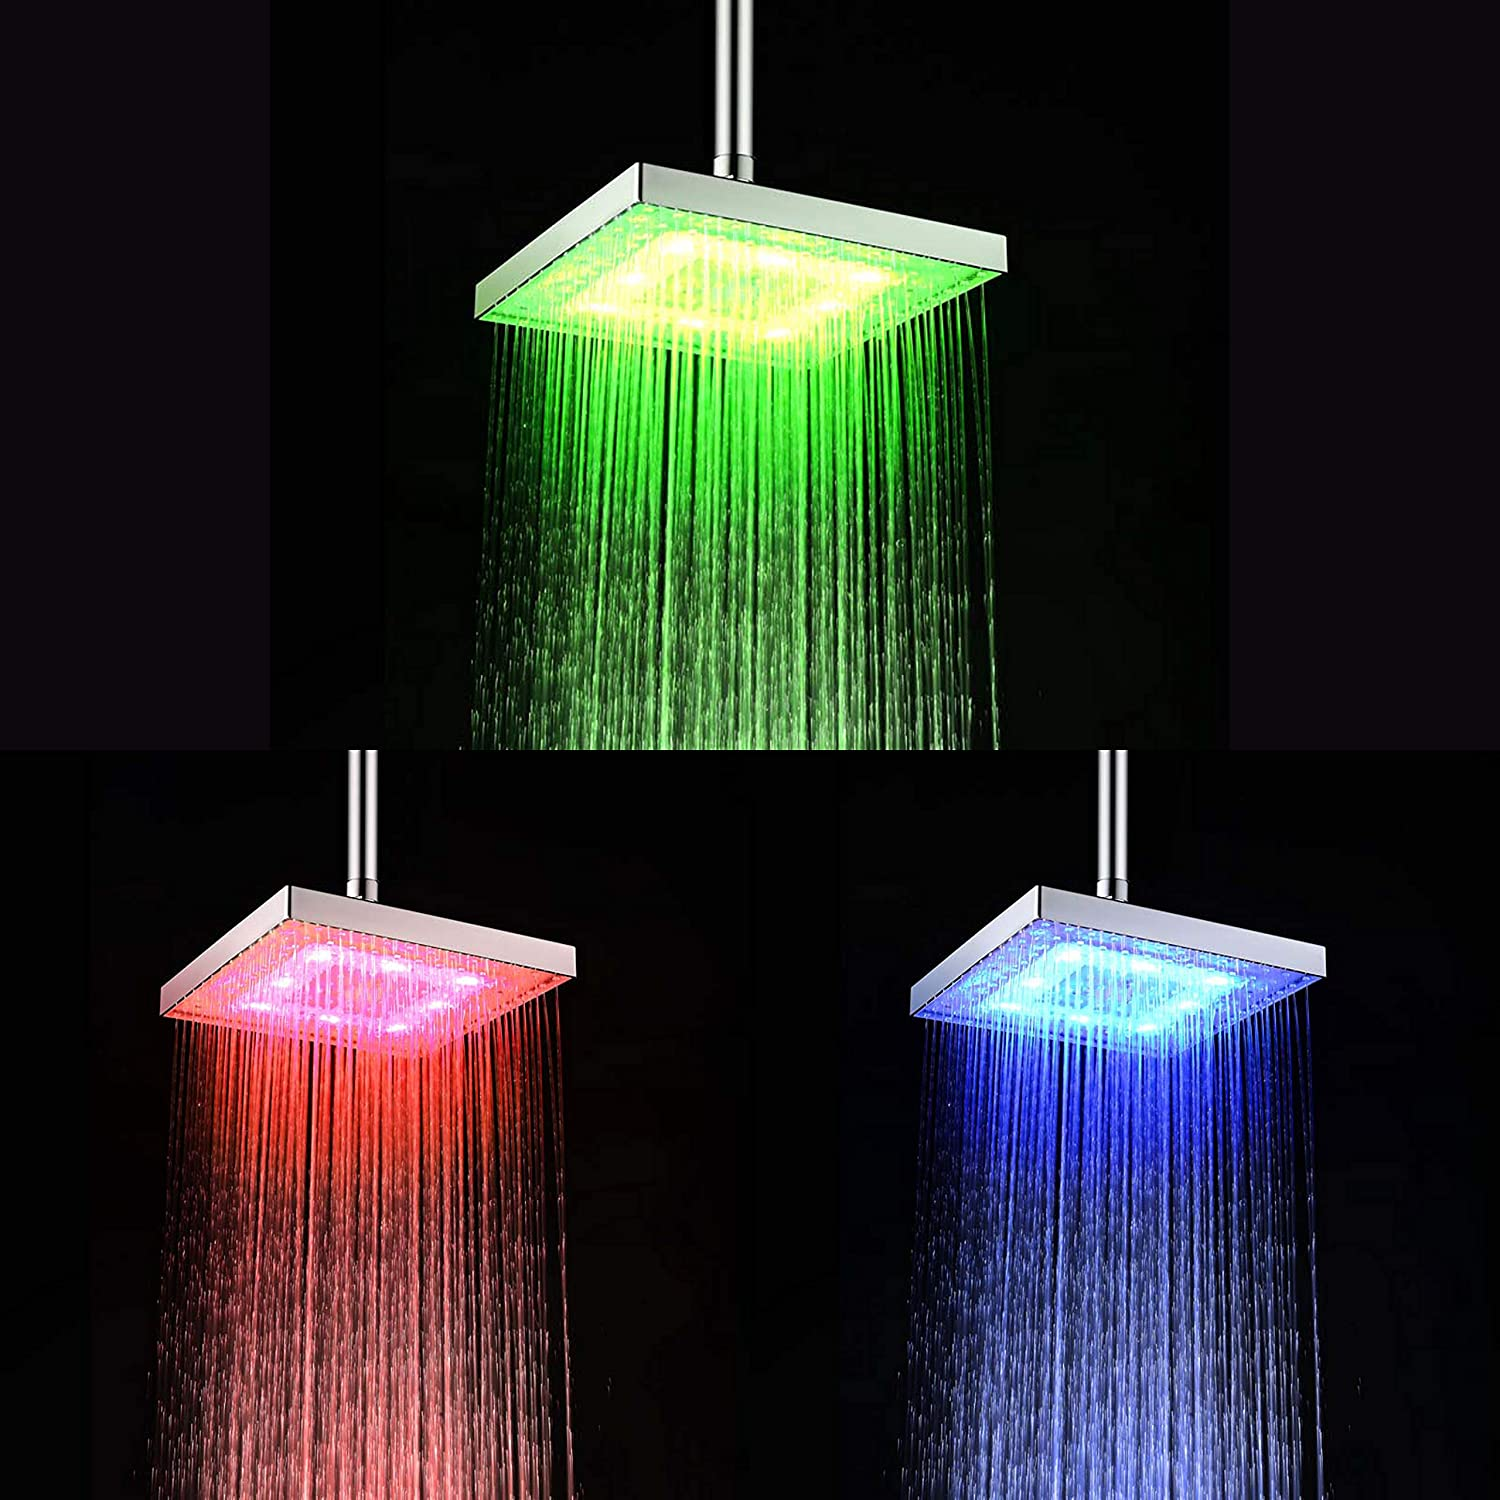 DELIPOP HN-11 8inch Square LED ShowerHeads Temperature Sensor 3 Color-Changing LED Overhead ABS Chrome Finished For Bathroom